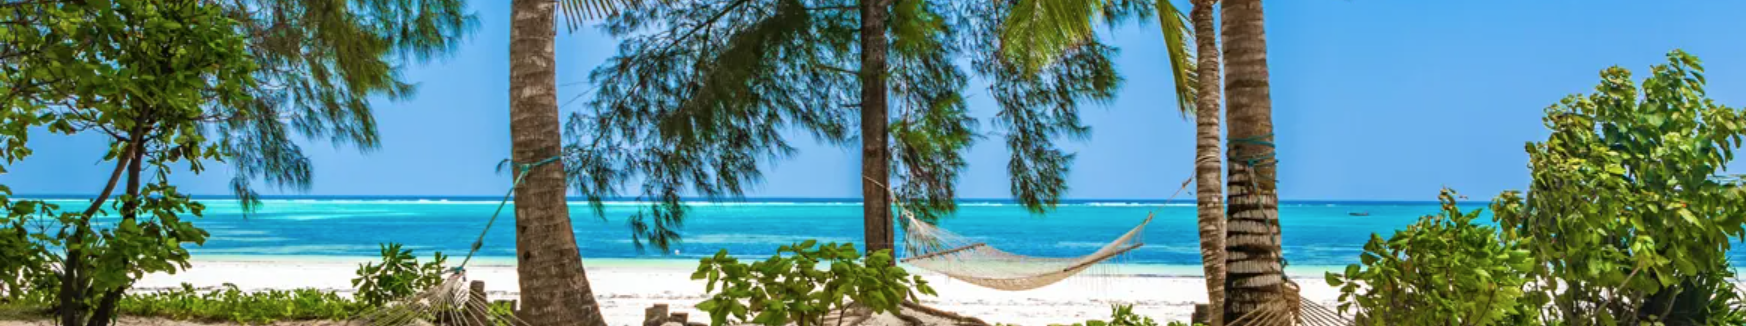 A view of a beach with white sand and lush greenery in Zanzibar, which can be visited via a cheap flight from Flight Centre.